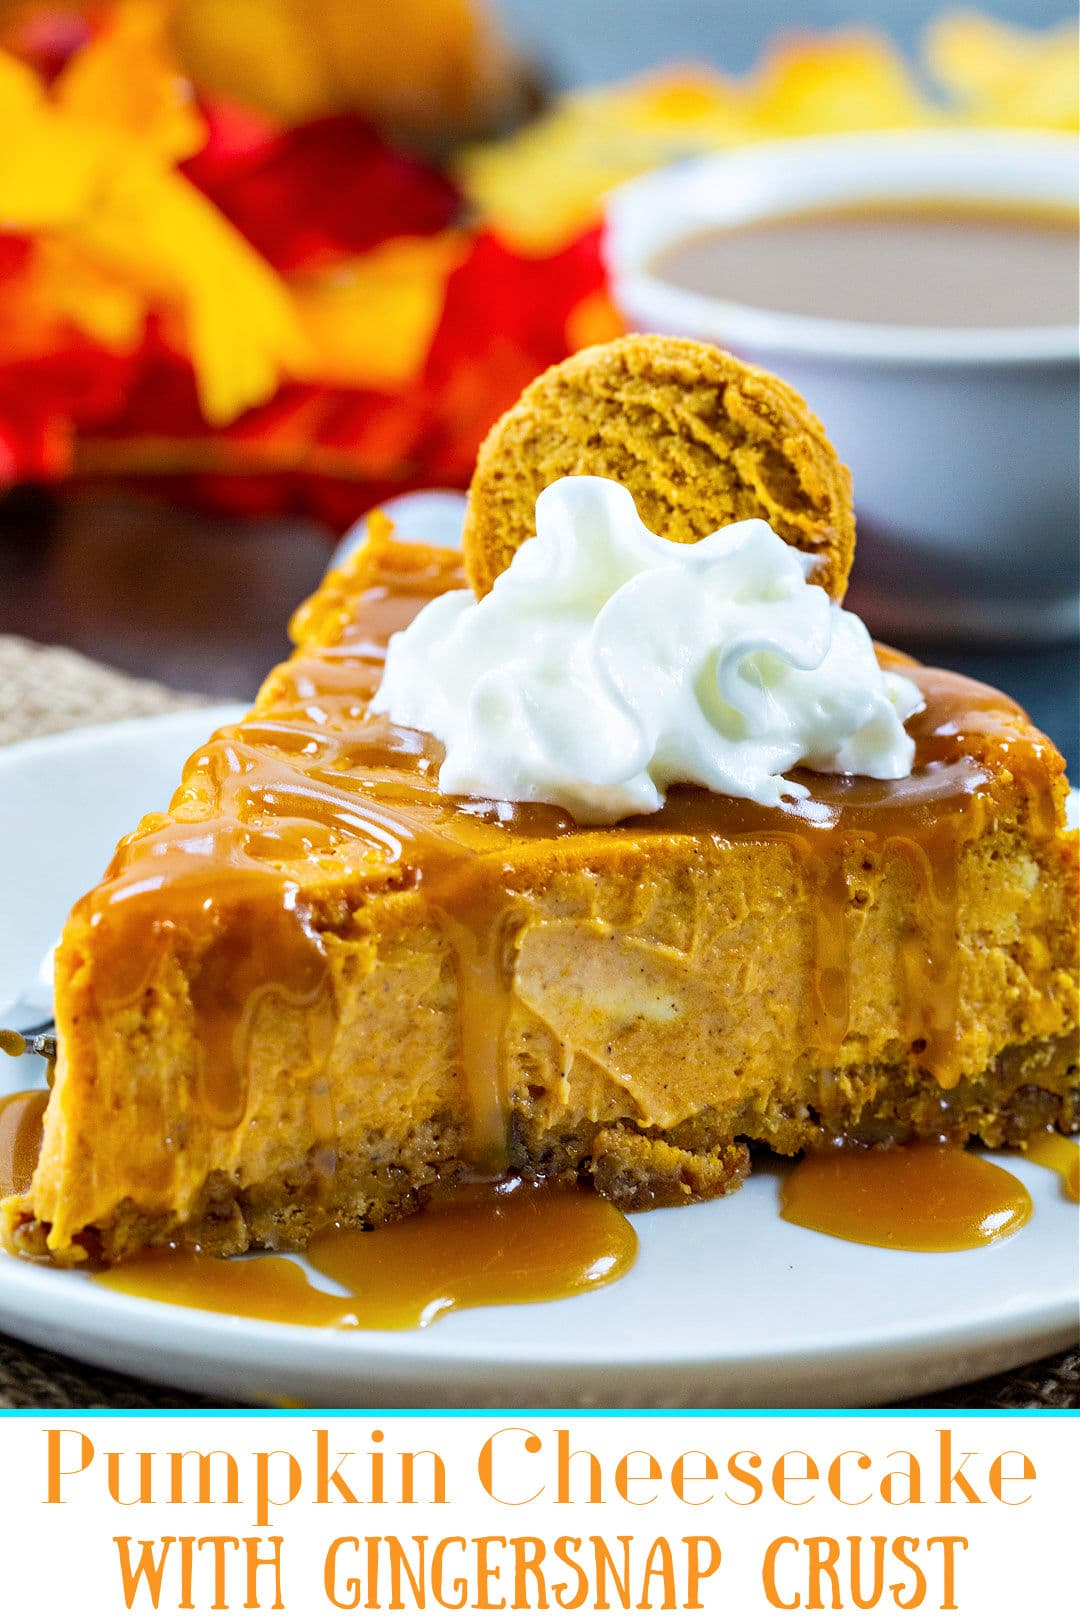 Slice of cheesecake drizzled with caramel sauce and topped with whipped cream.